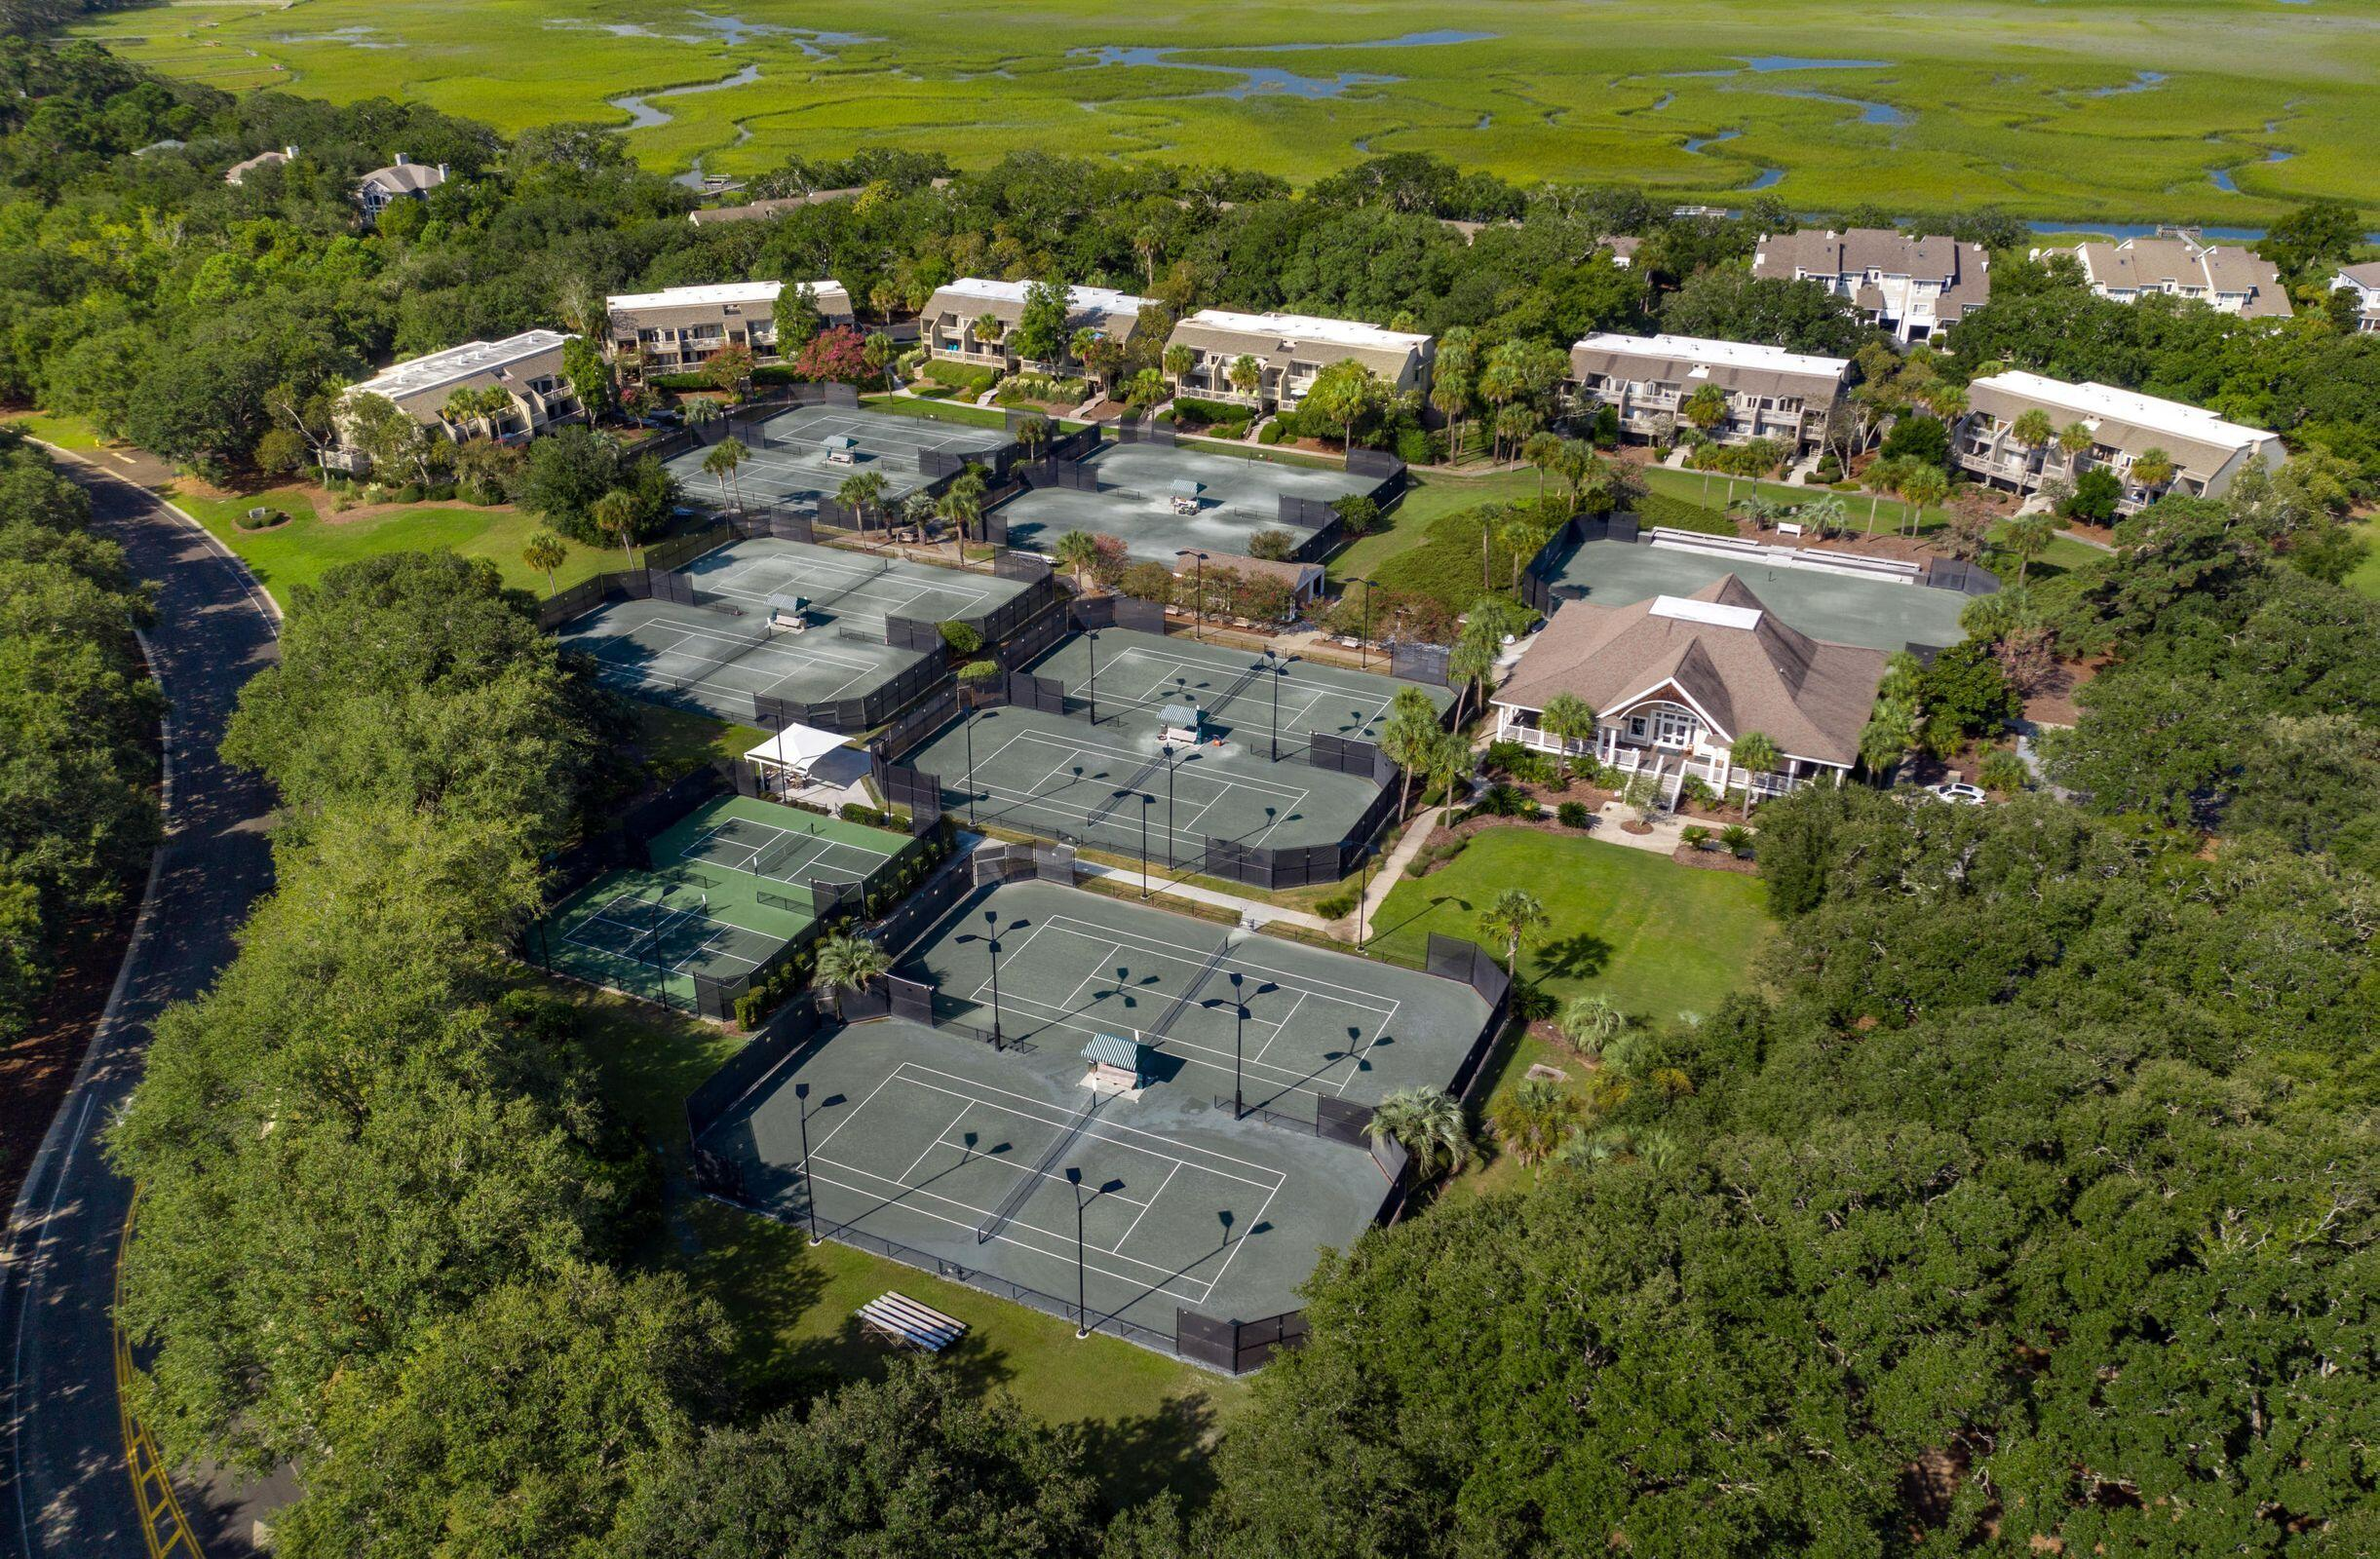 Seabrook Island Homes For Sale - 1329 Pelican Watch Villas, Seabrook Island, SC - 36